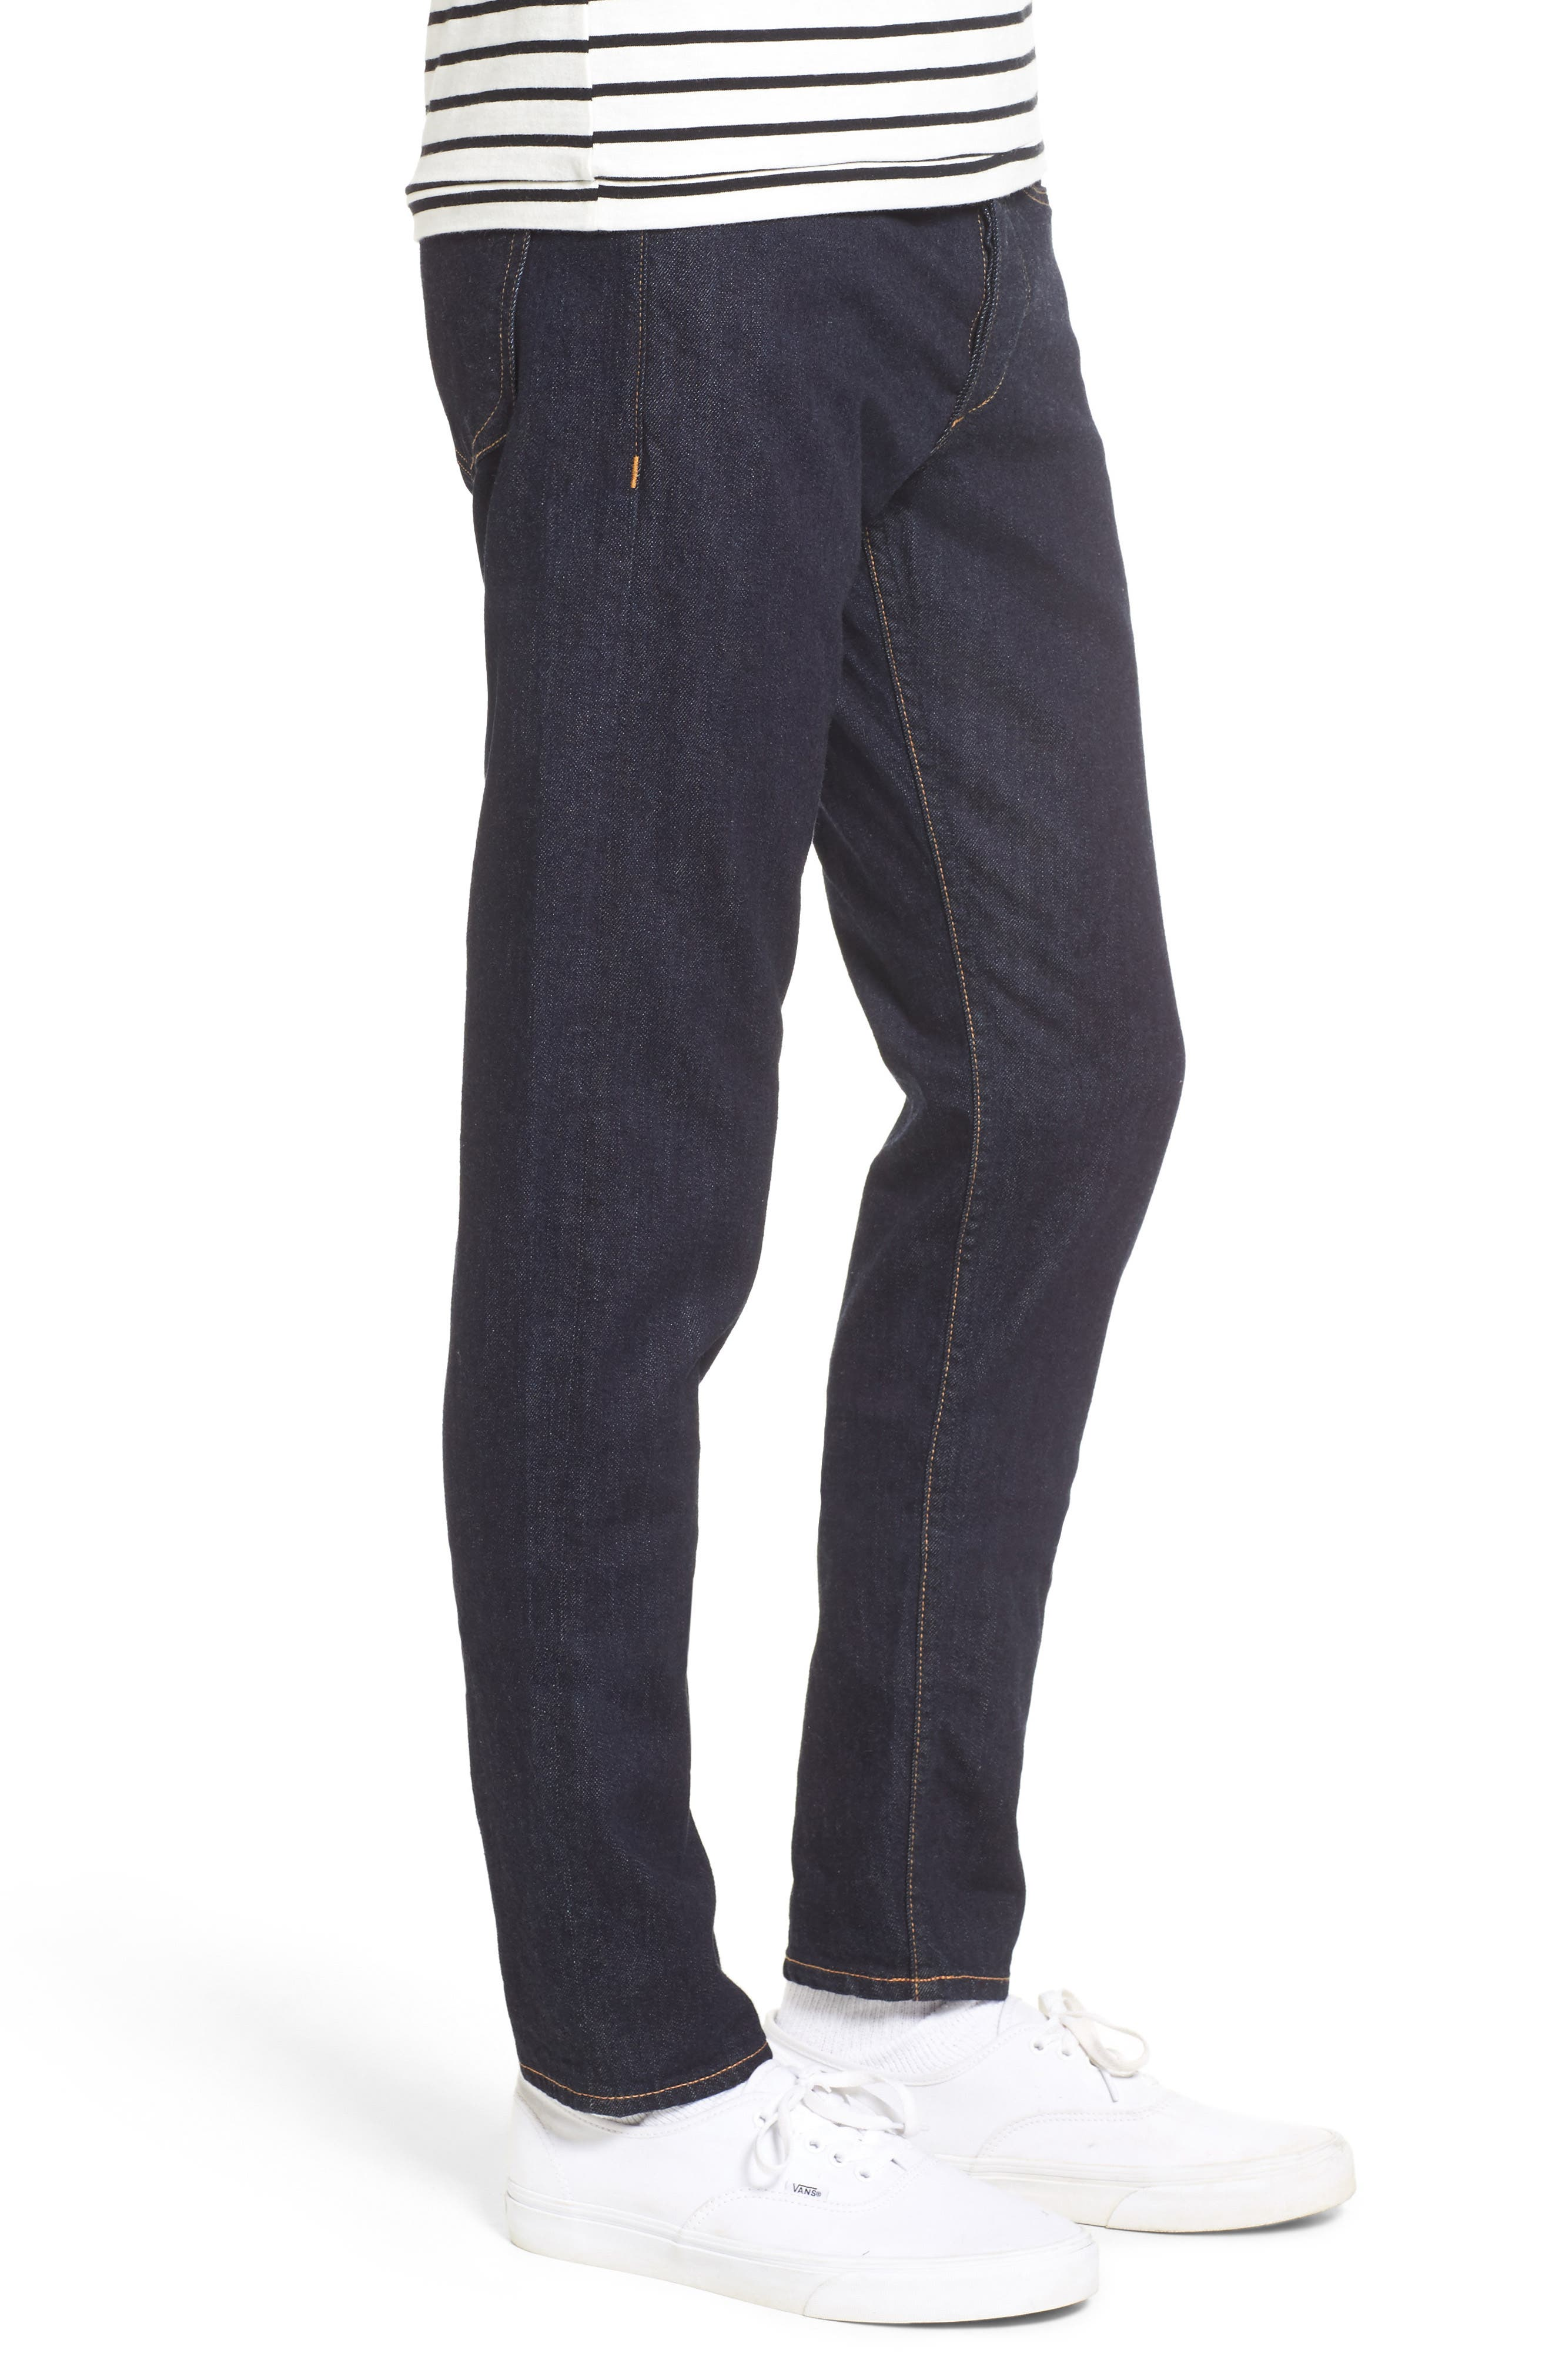 Standard Issue Fit 1 Skinny Fit Jeans,                             Alternate thumbnail 3, color,                             476